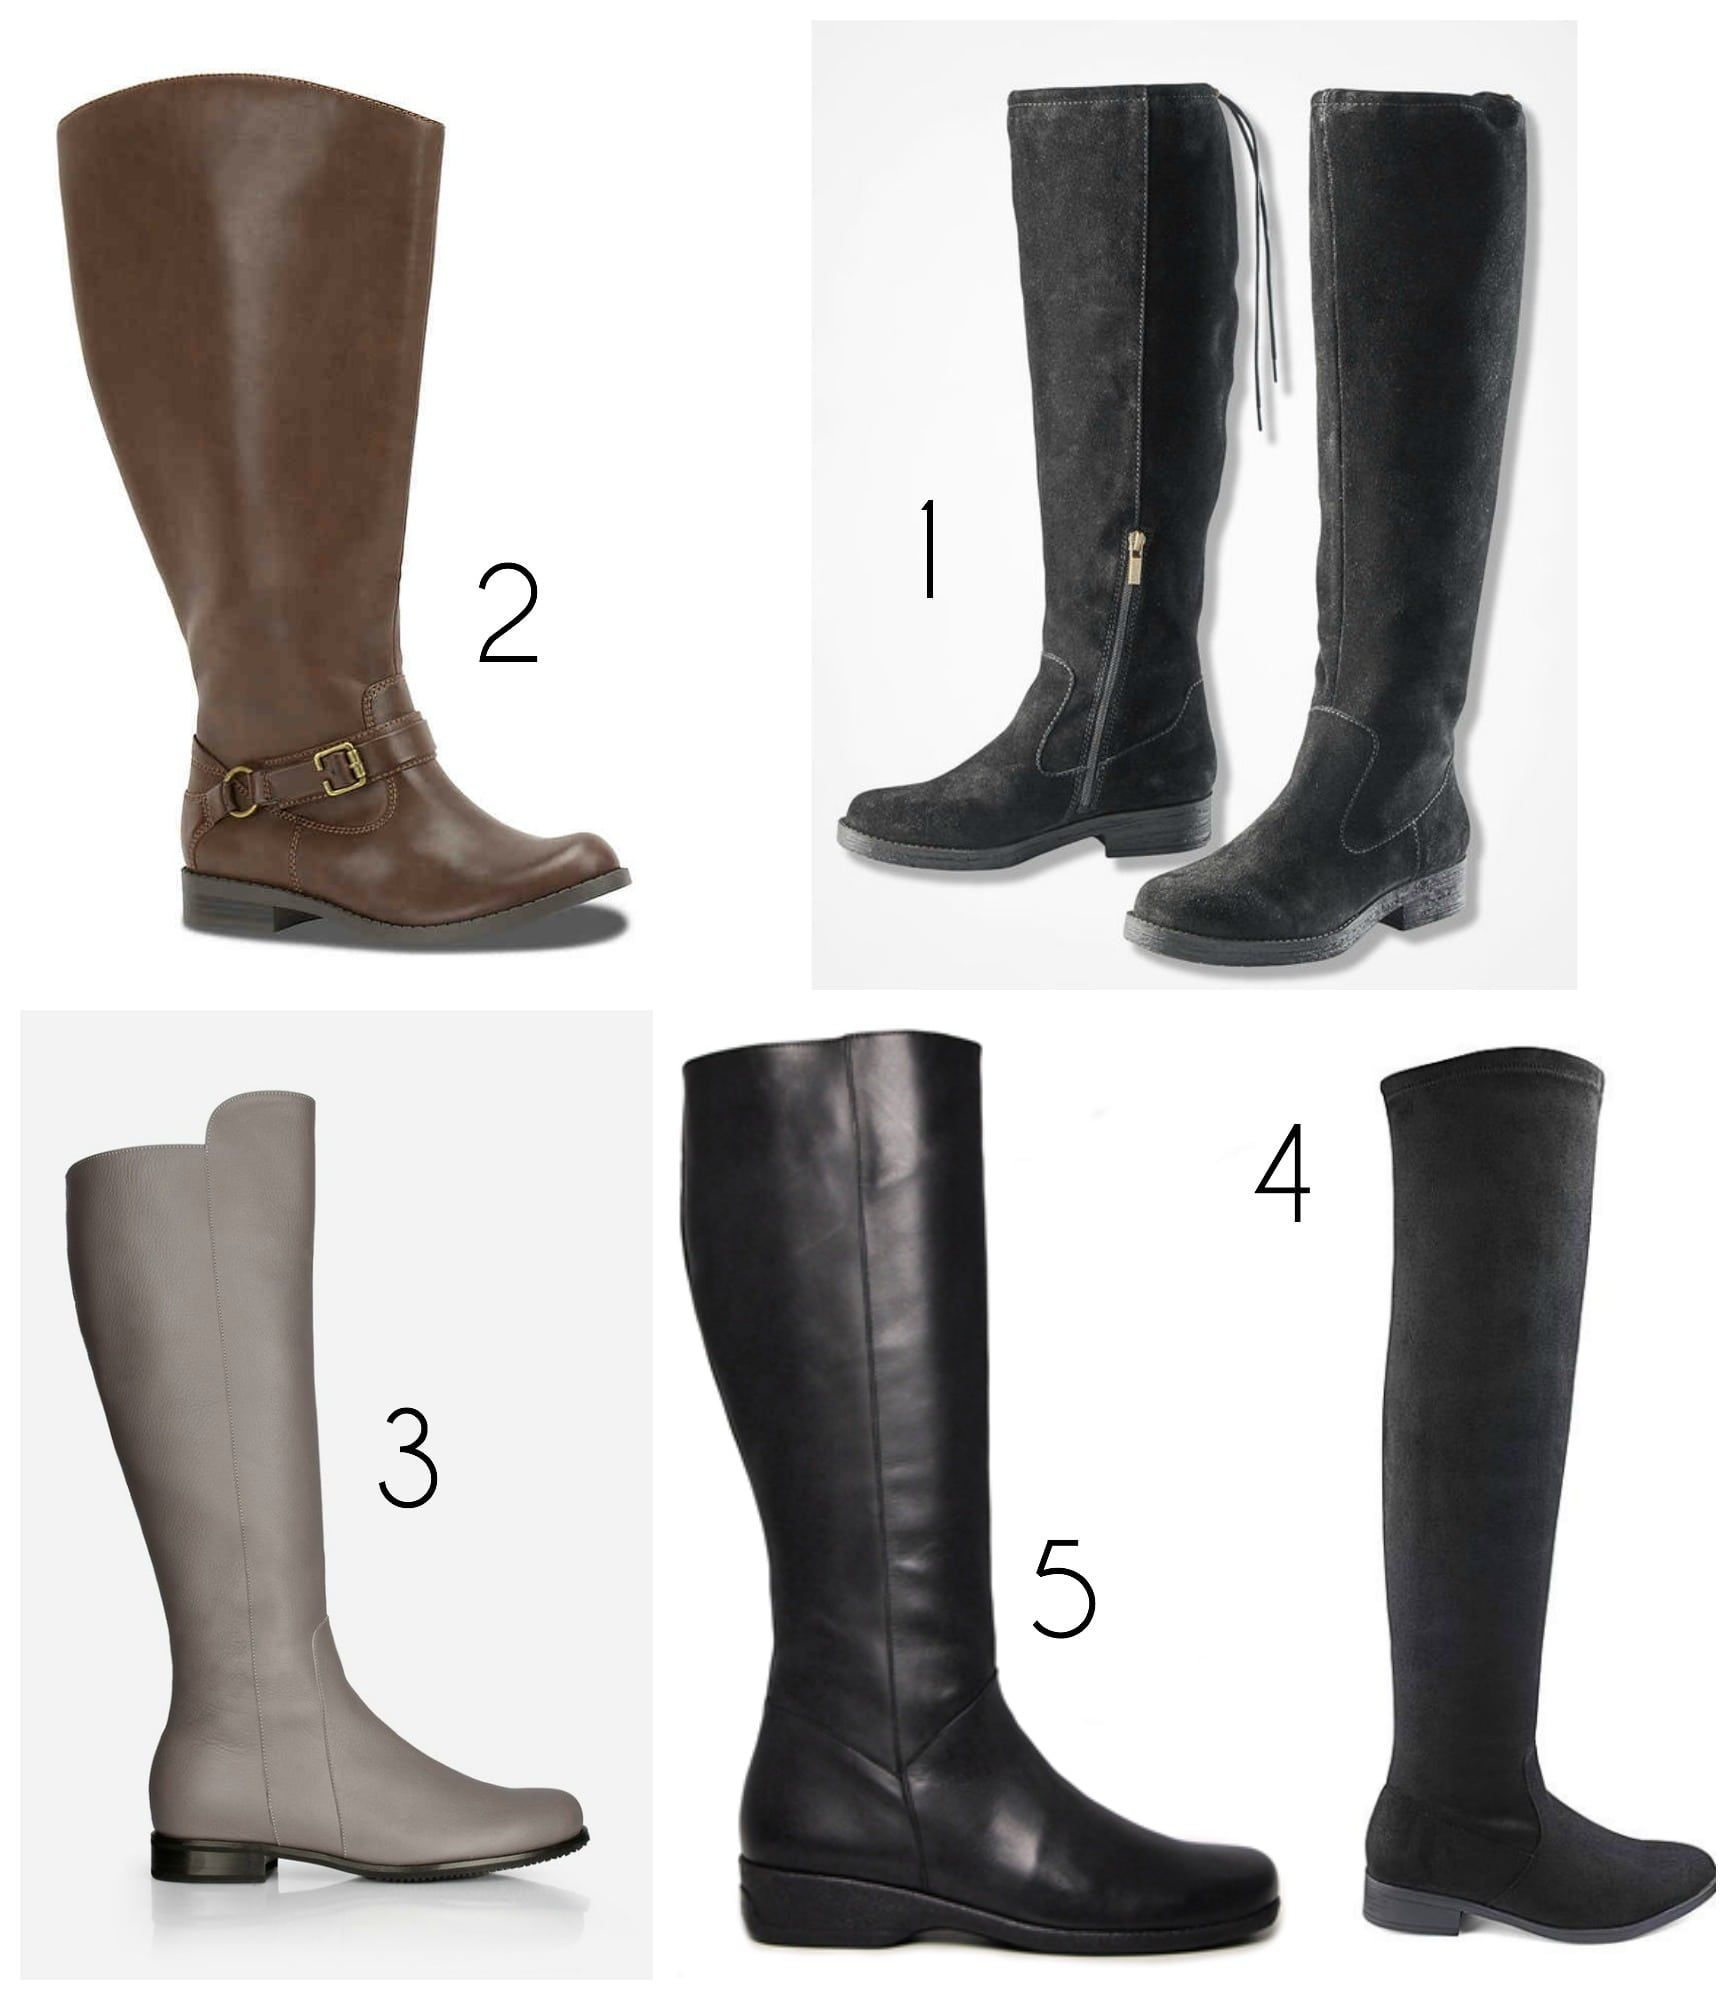 e8dd2dc4d84 Where to Find Stylish Wide Calf Boots | Fall clothes | Wide calf ...